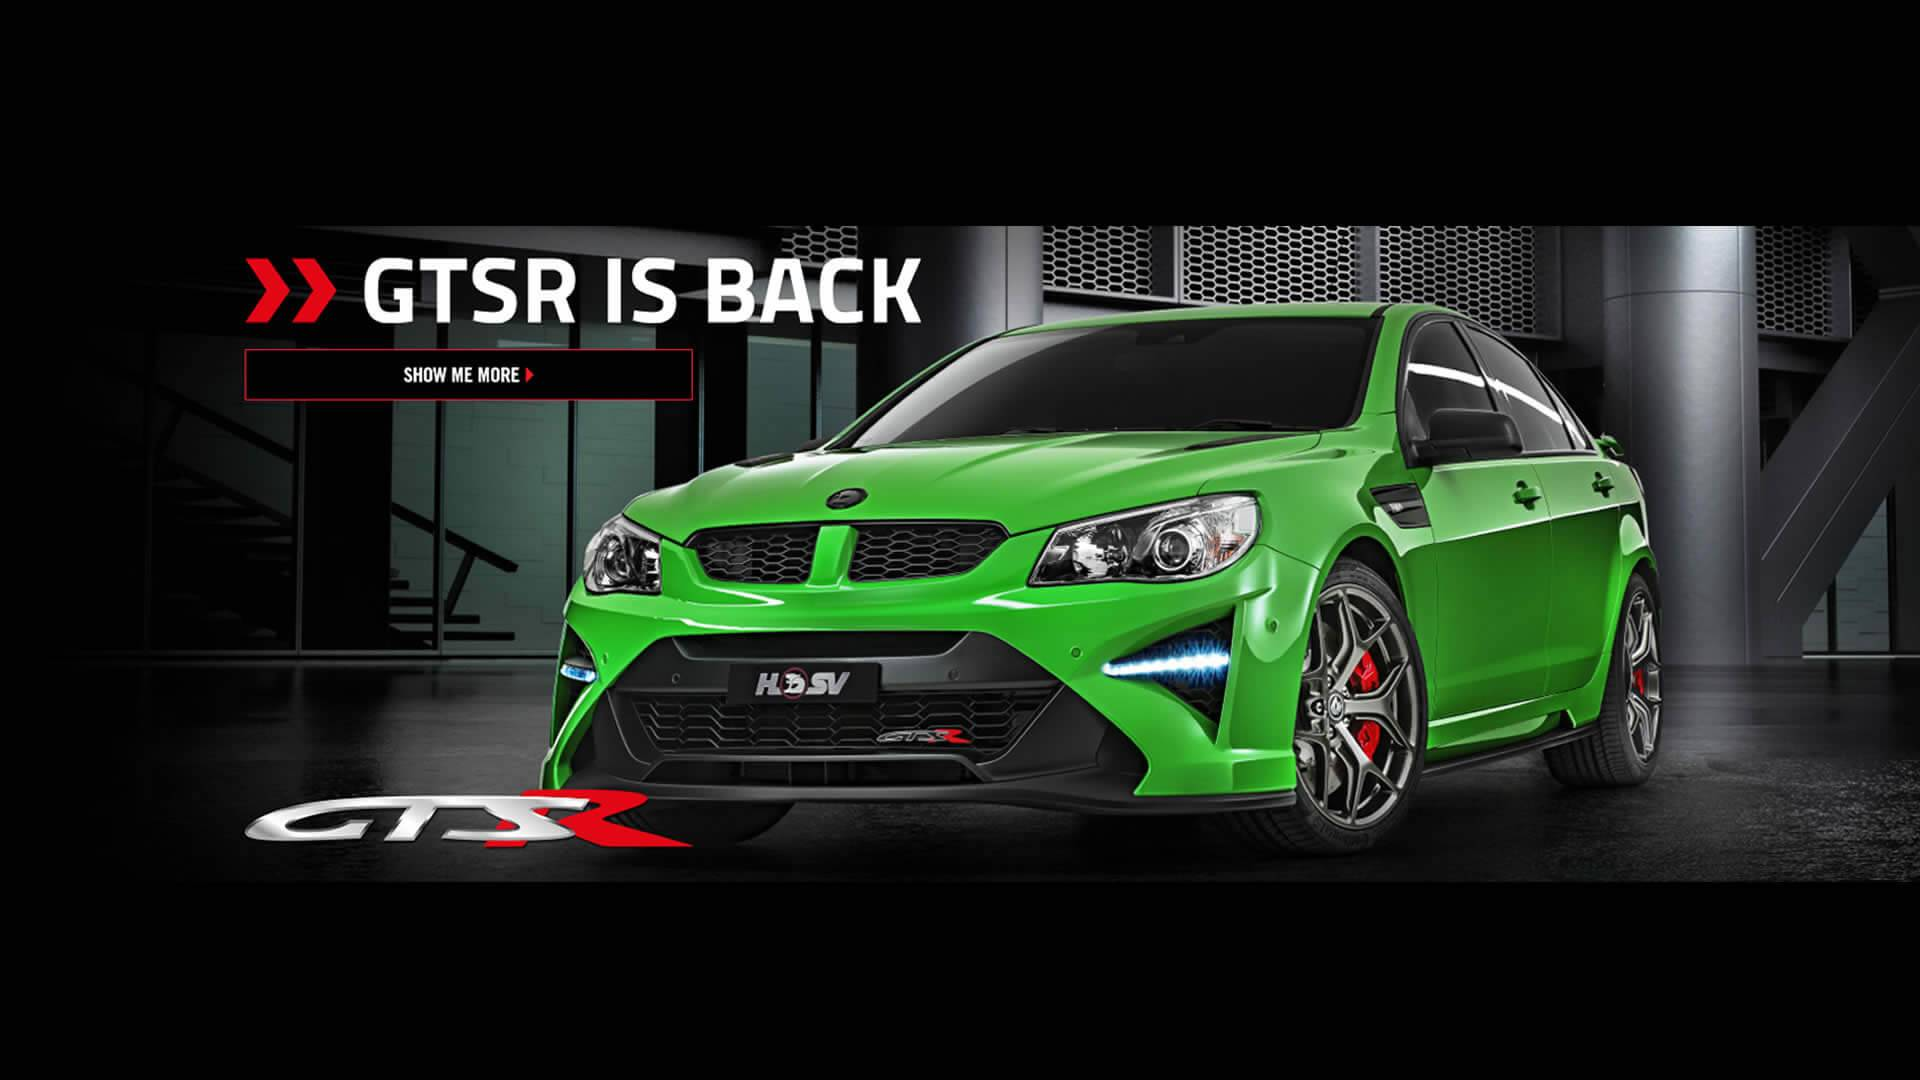 HSV TEMPLATE GTSR IS BACK